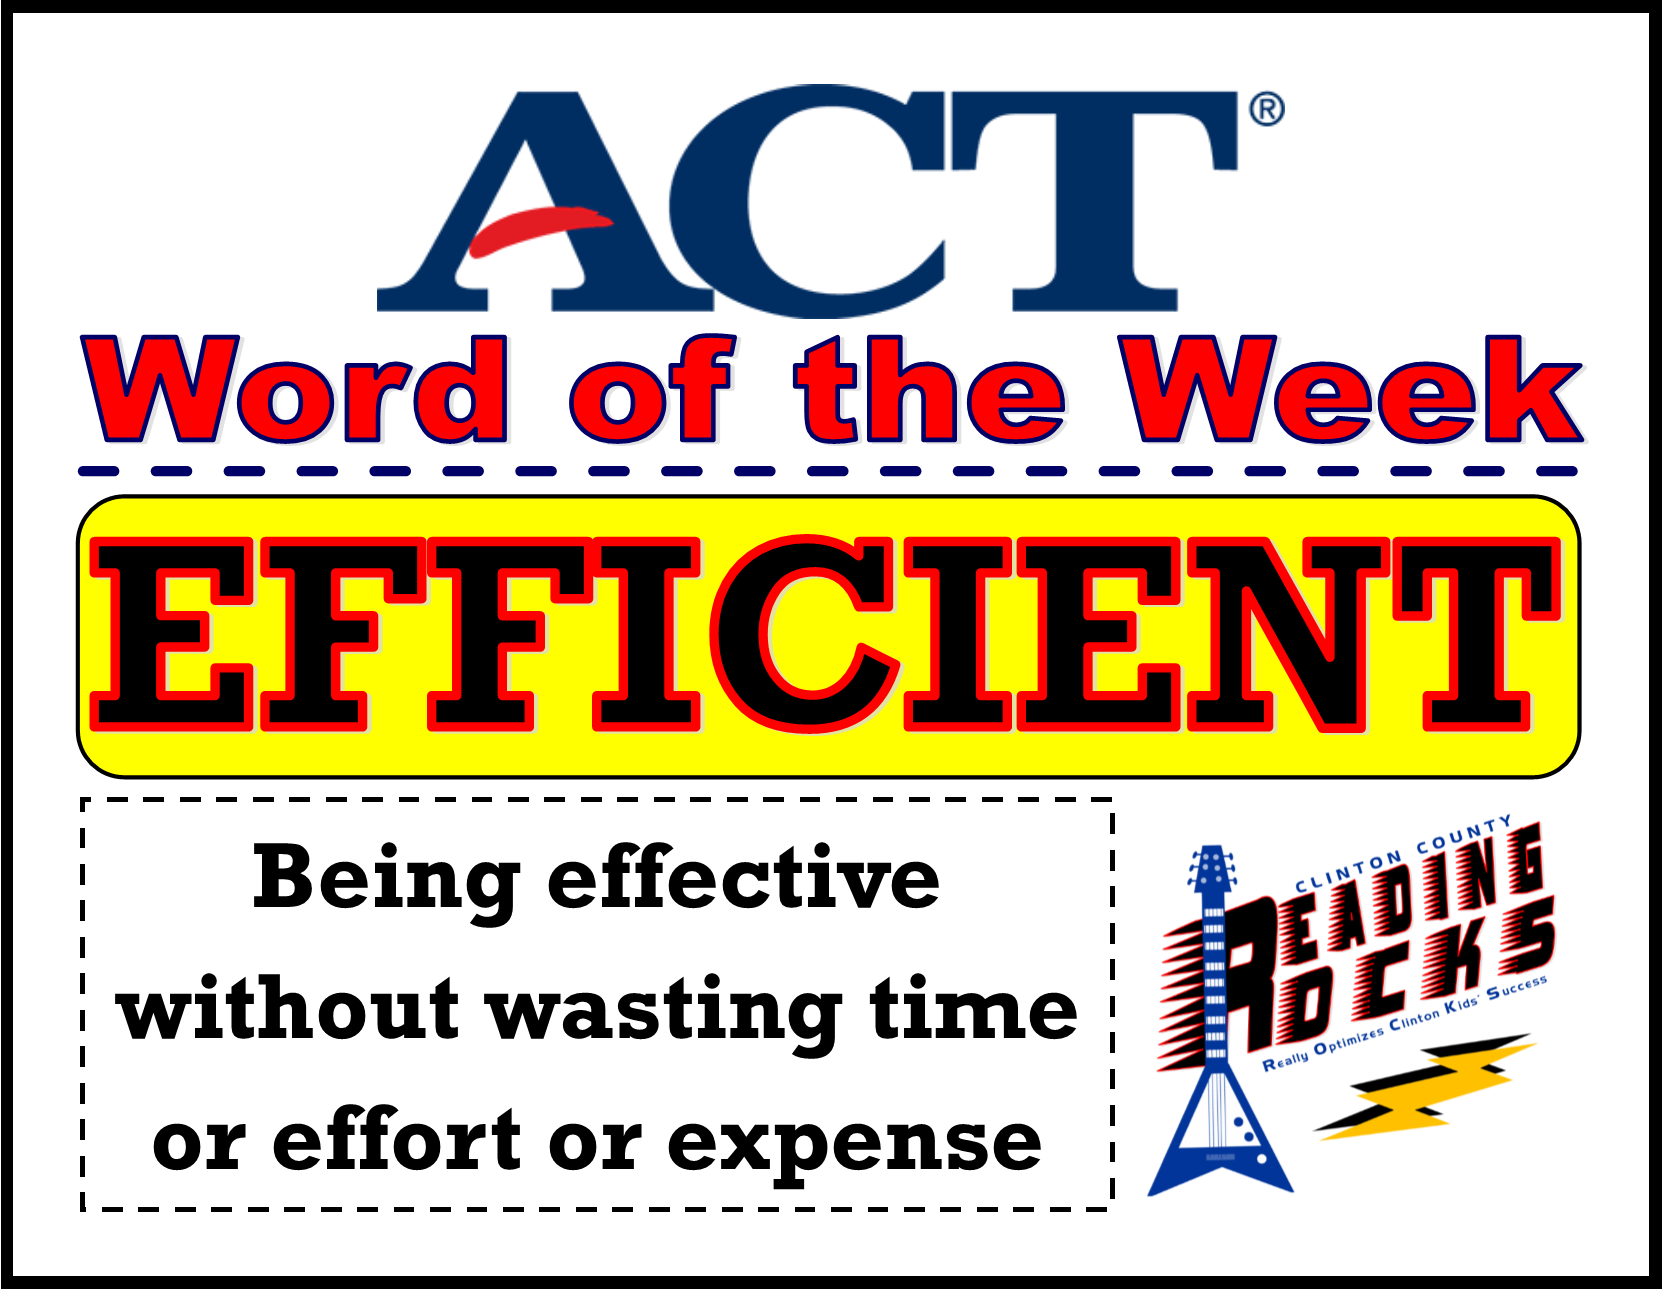 The CCHS Reading ROCKS ACT Word of the Week is - EFFICIENT!